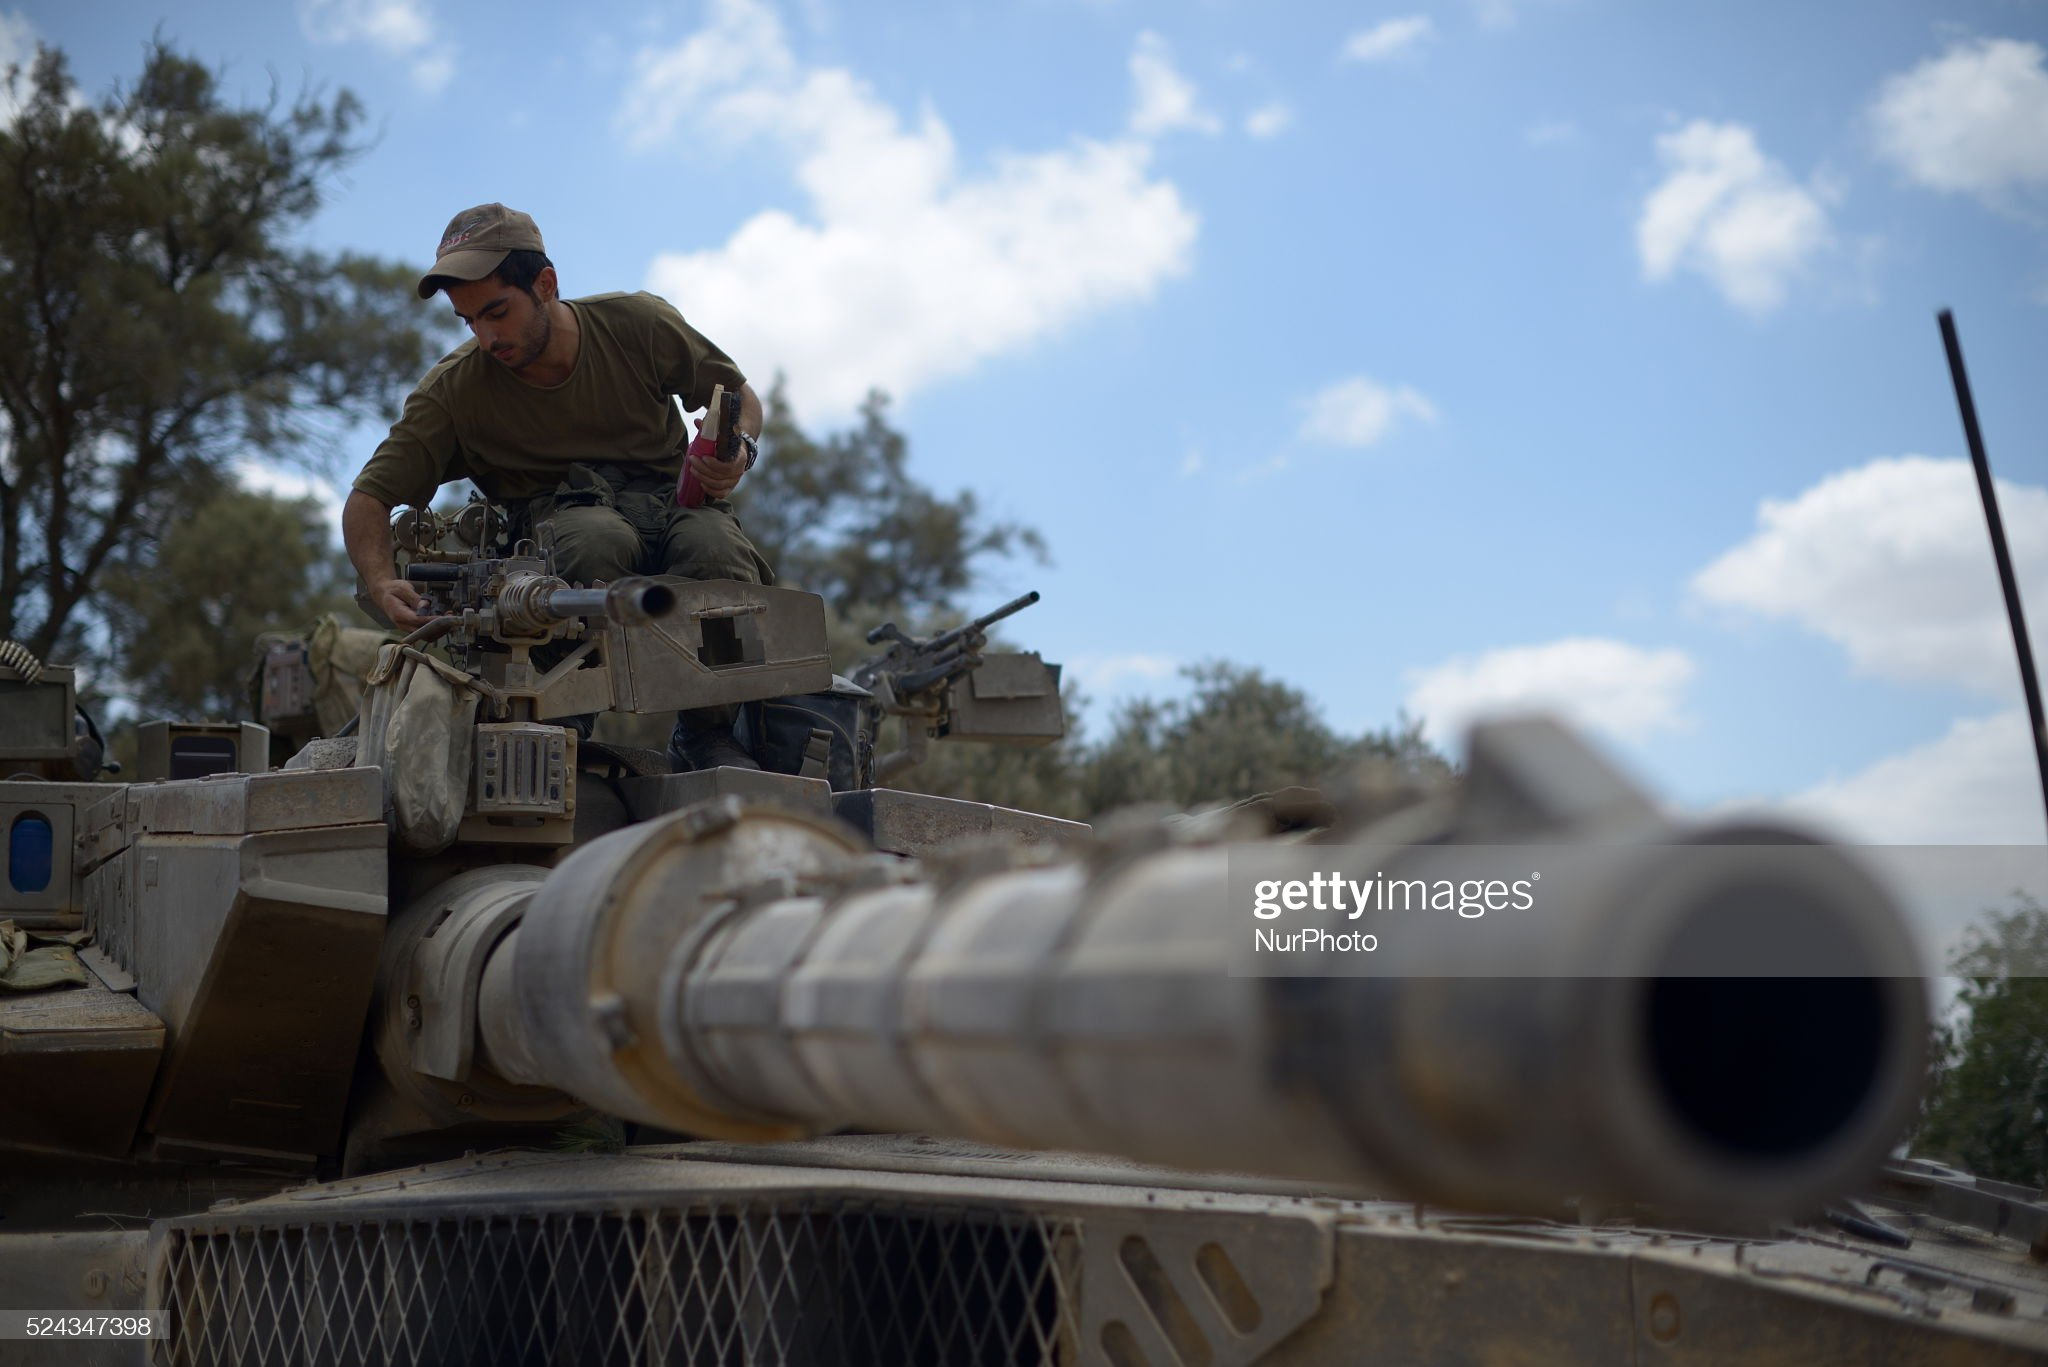 https://media.gettyimages.com/photos/an-israeli-soldier-stands-atop-a-merkava-tank-at-an-army-deployment-picture-id524347398?s=2048x2048